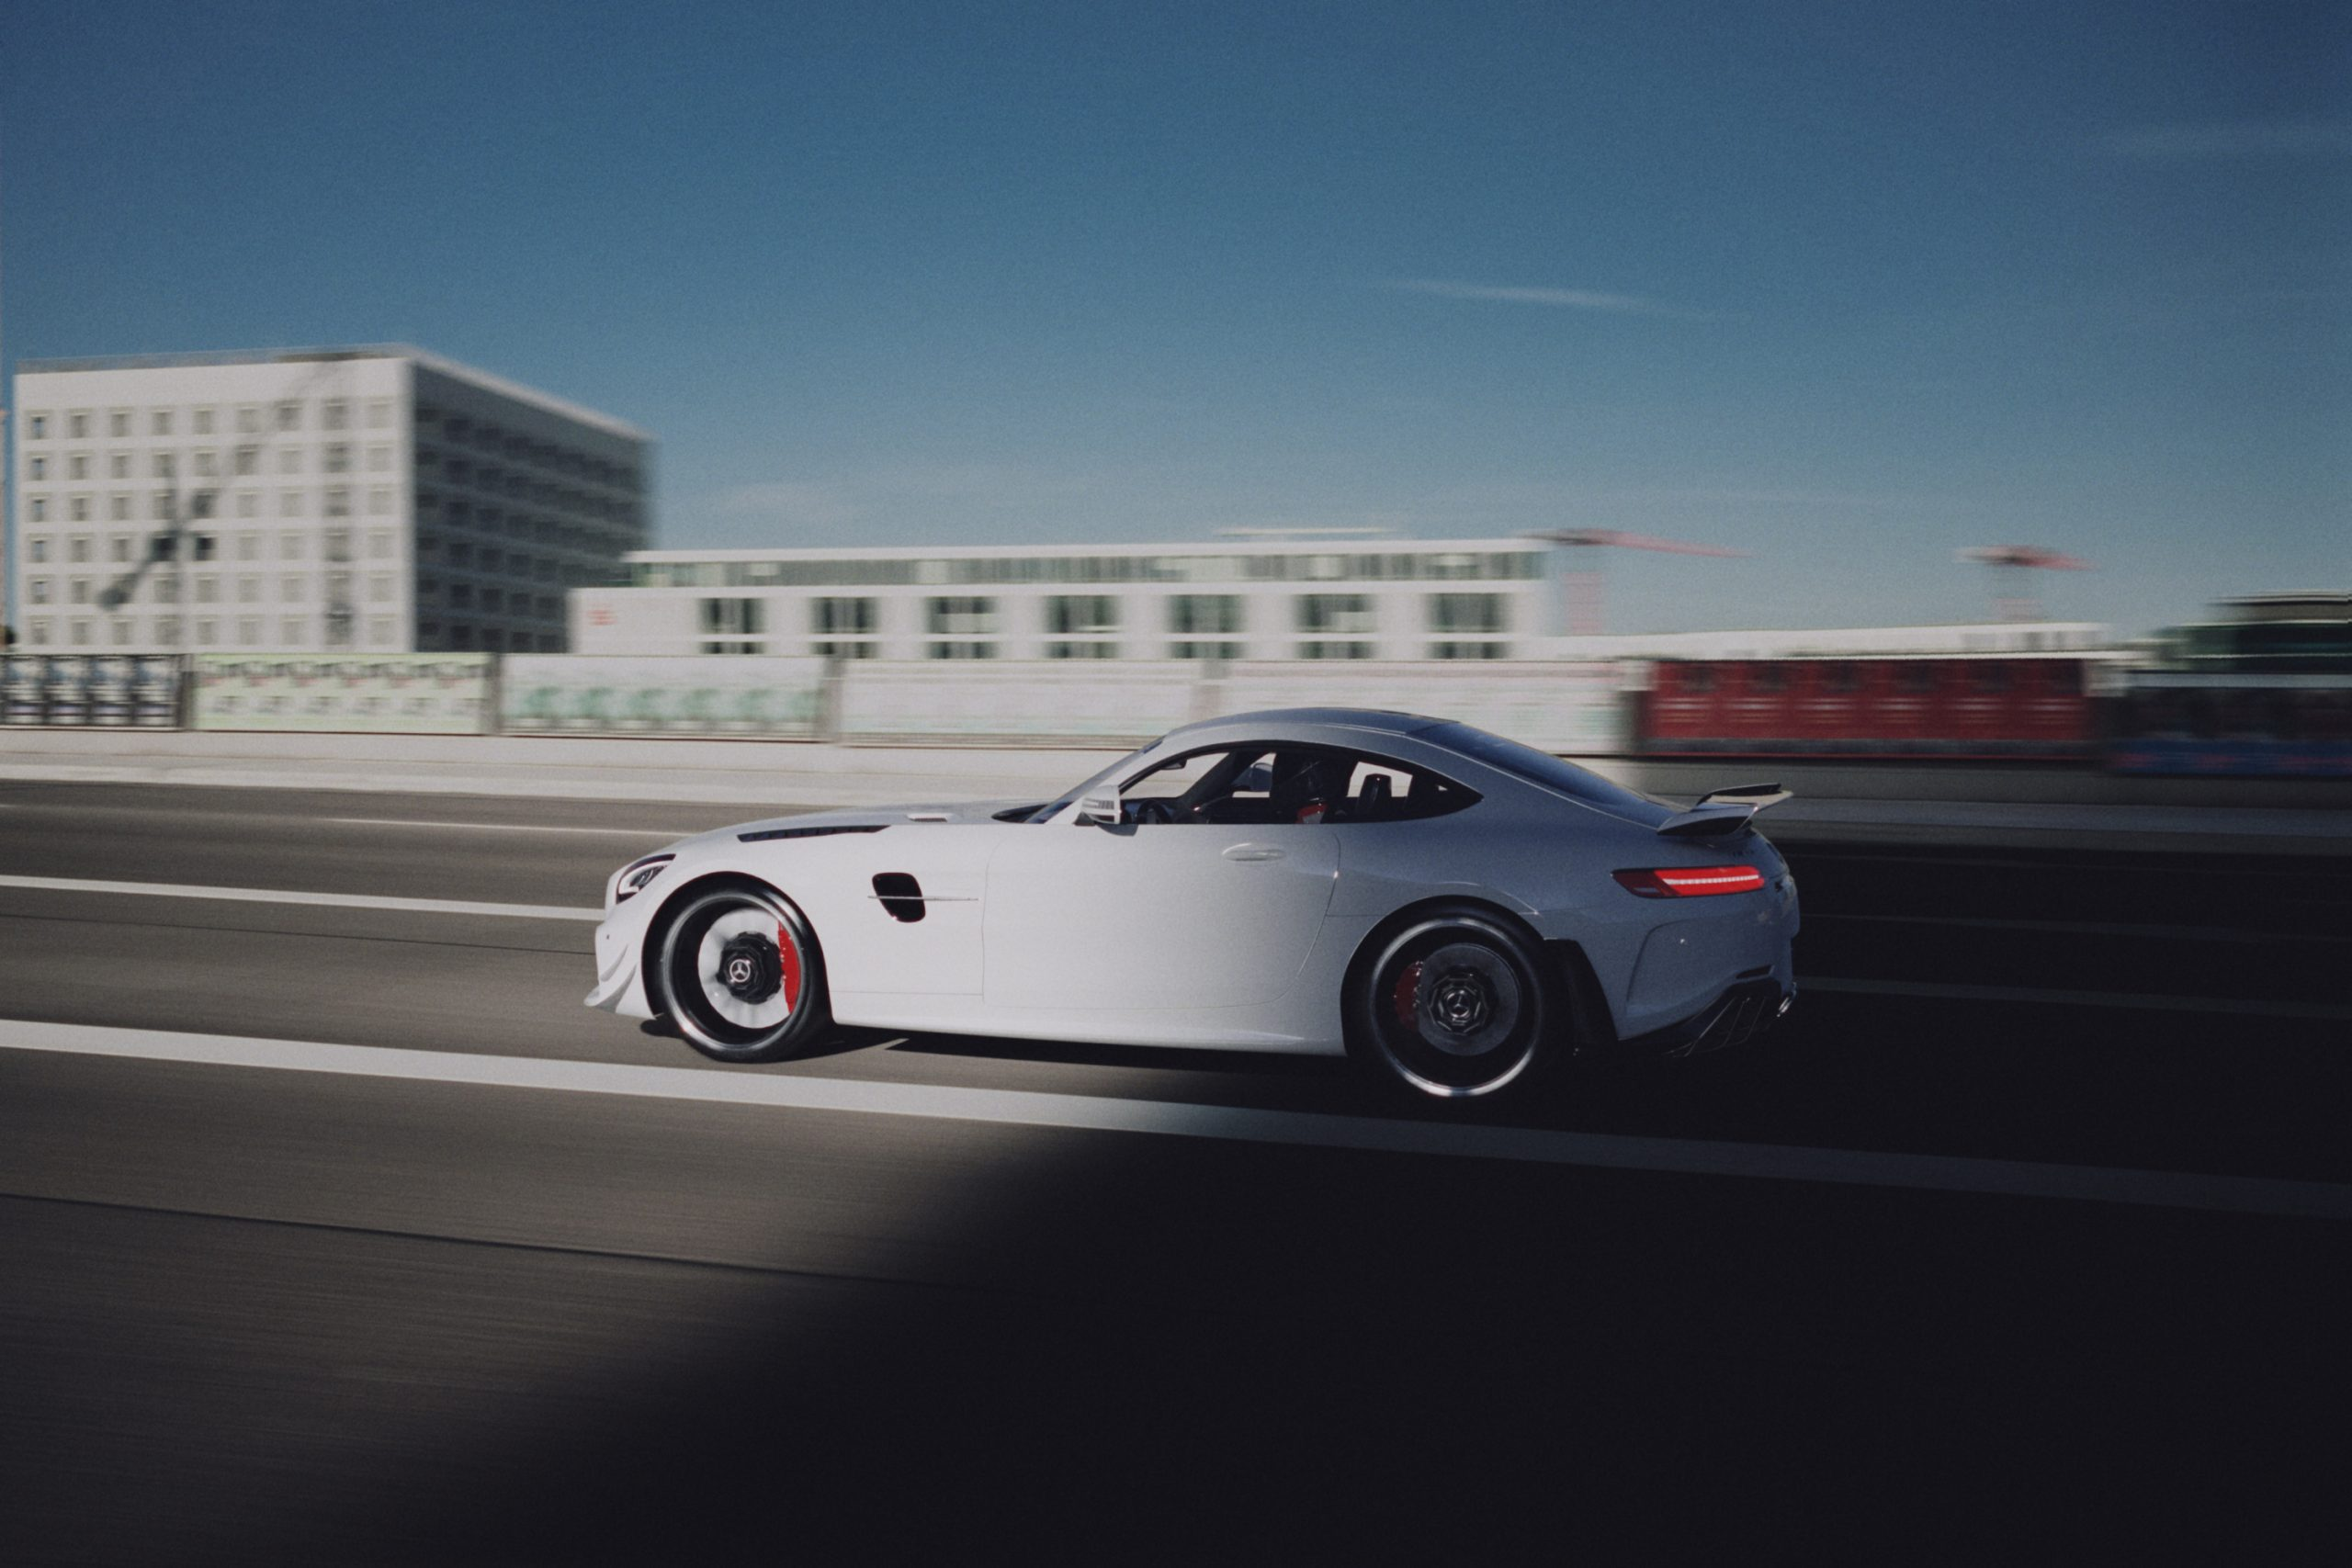 BLMRS_AMG_GT_005_GRADED